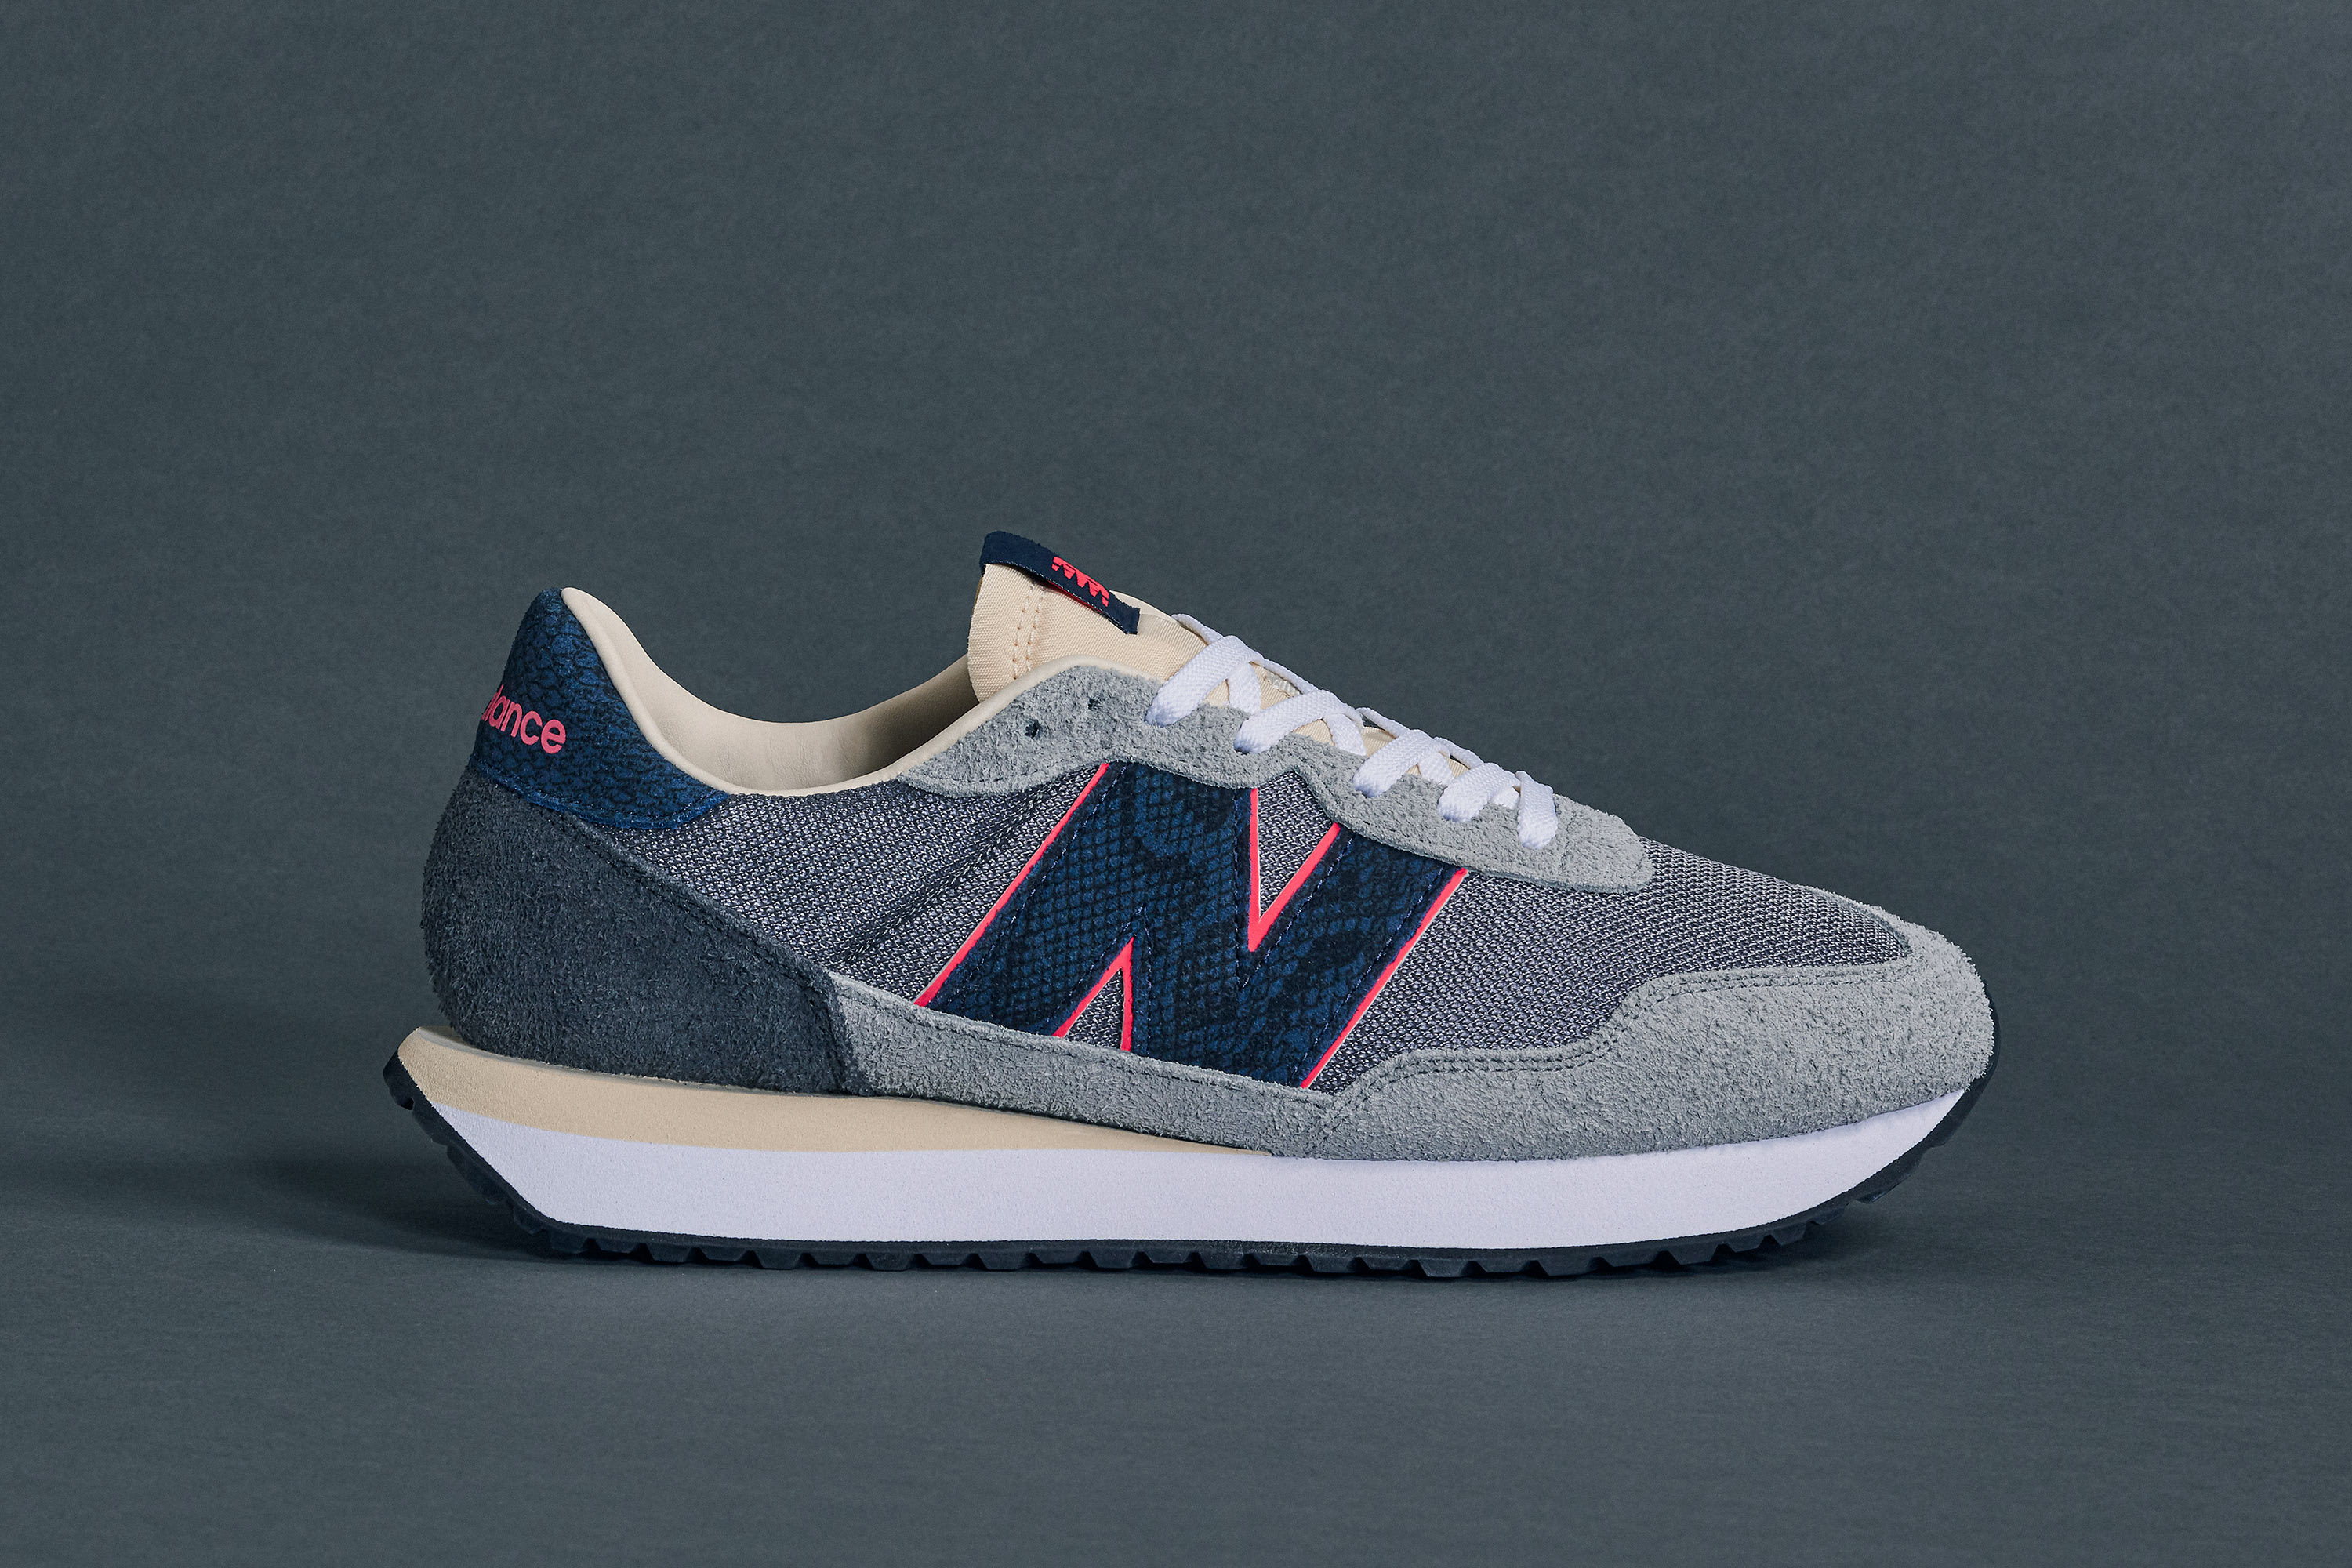 Sneakersnstuff x New Balance 237 'Blue Racer' (Lateral)